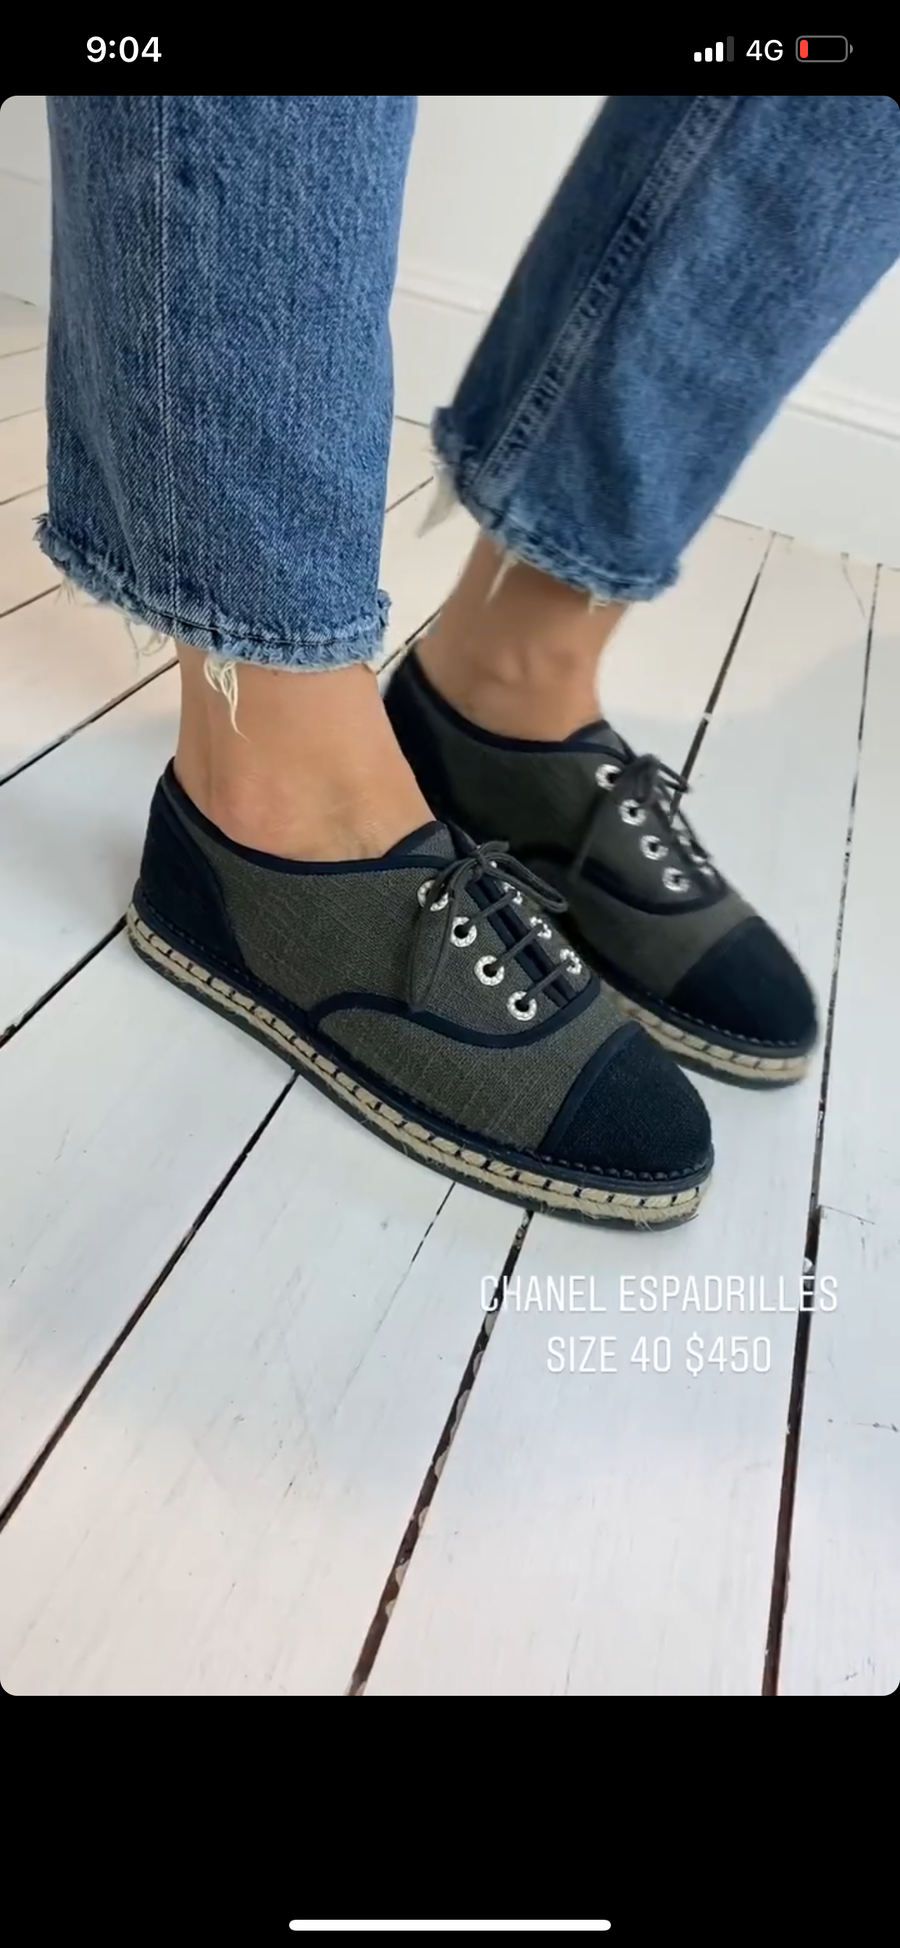 Chanel espadrilles 39 (with box and dust bag)